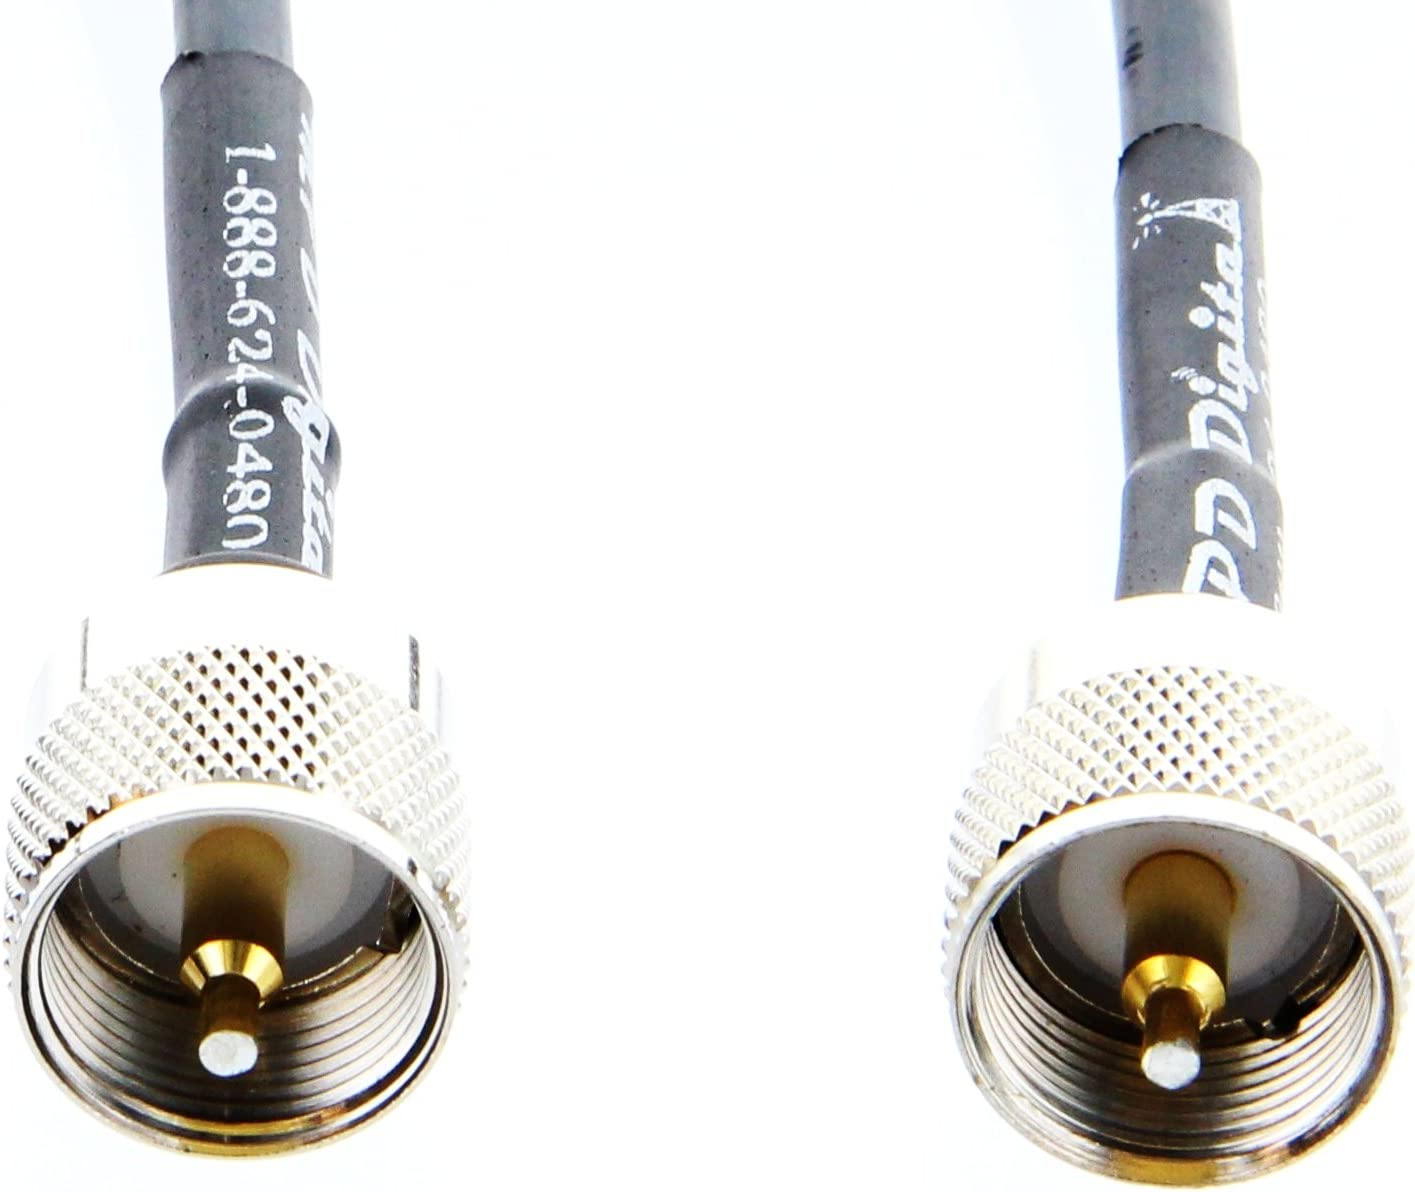 L-com commscope-uhf-7 Online limited product Andrew Commscope Coaxial Cnt-240 C LMR-240 excellence